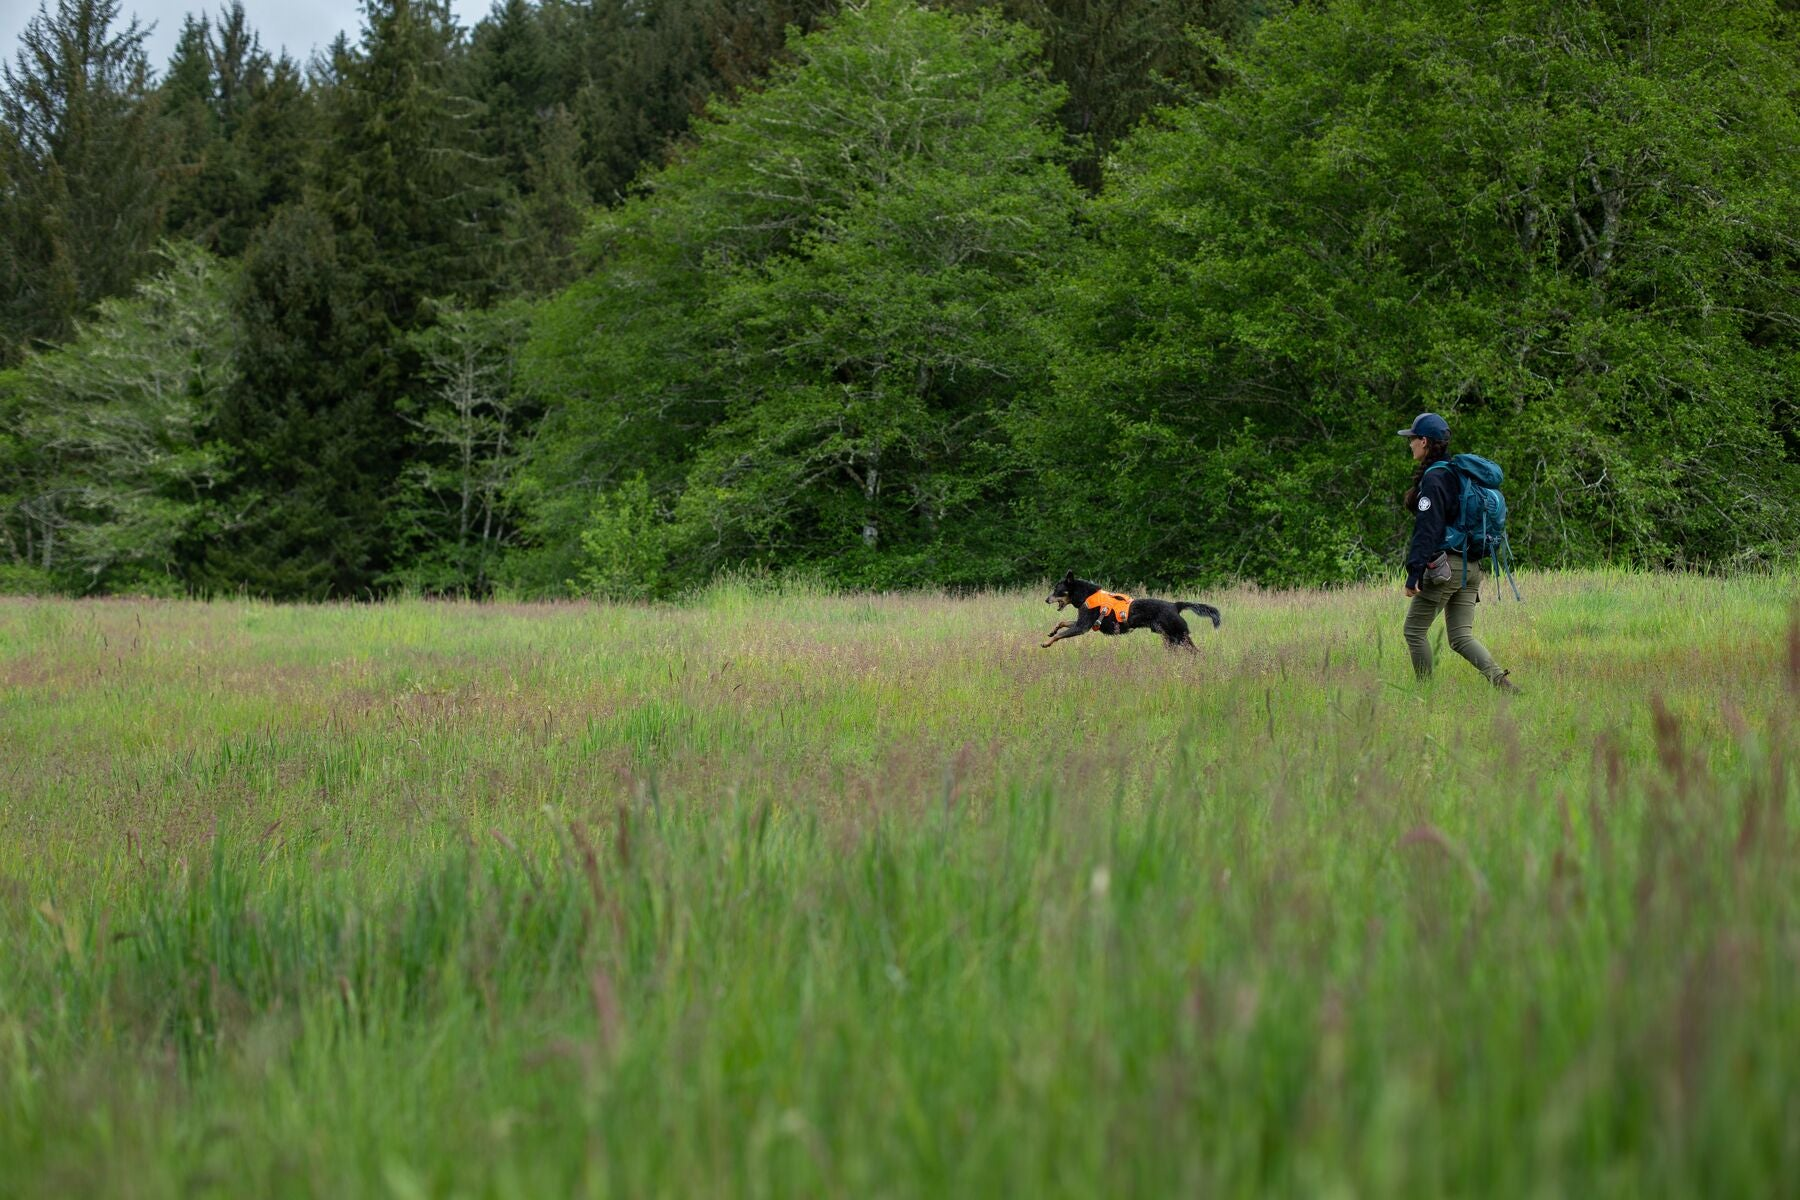 Handler and dog with high-vis orange harness in a grassy field